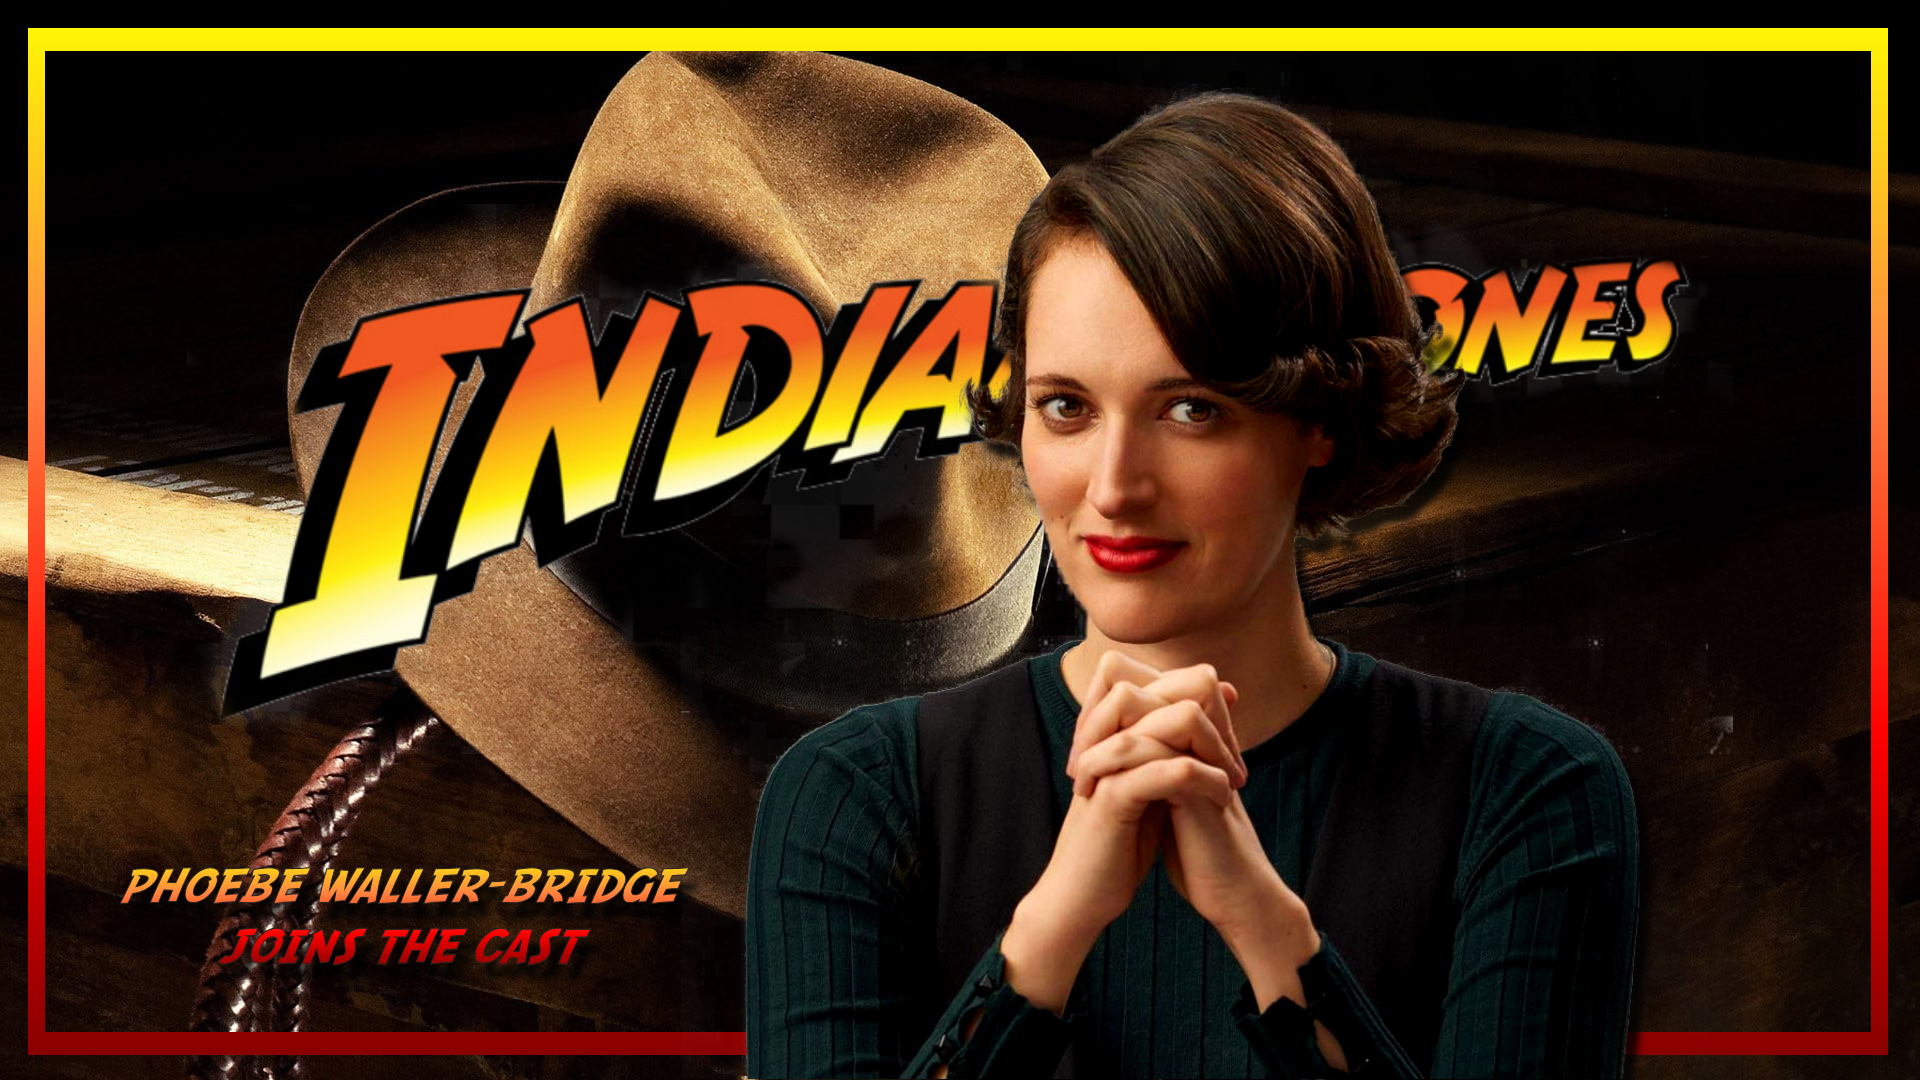 Indiana Jones 5 | Phoebe Waller-Bridge Joins The Cast